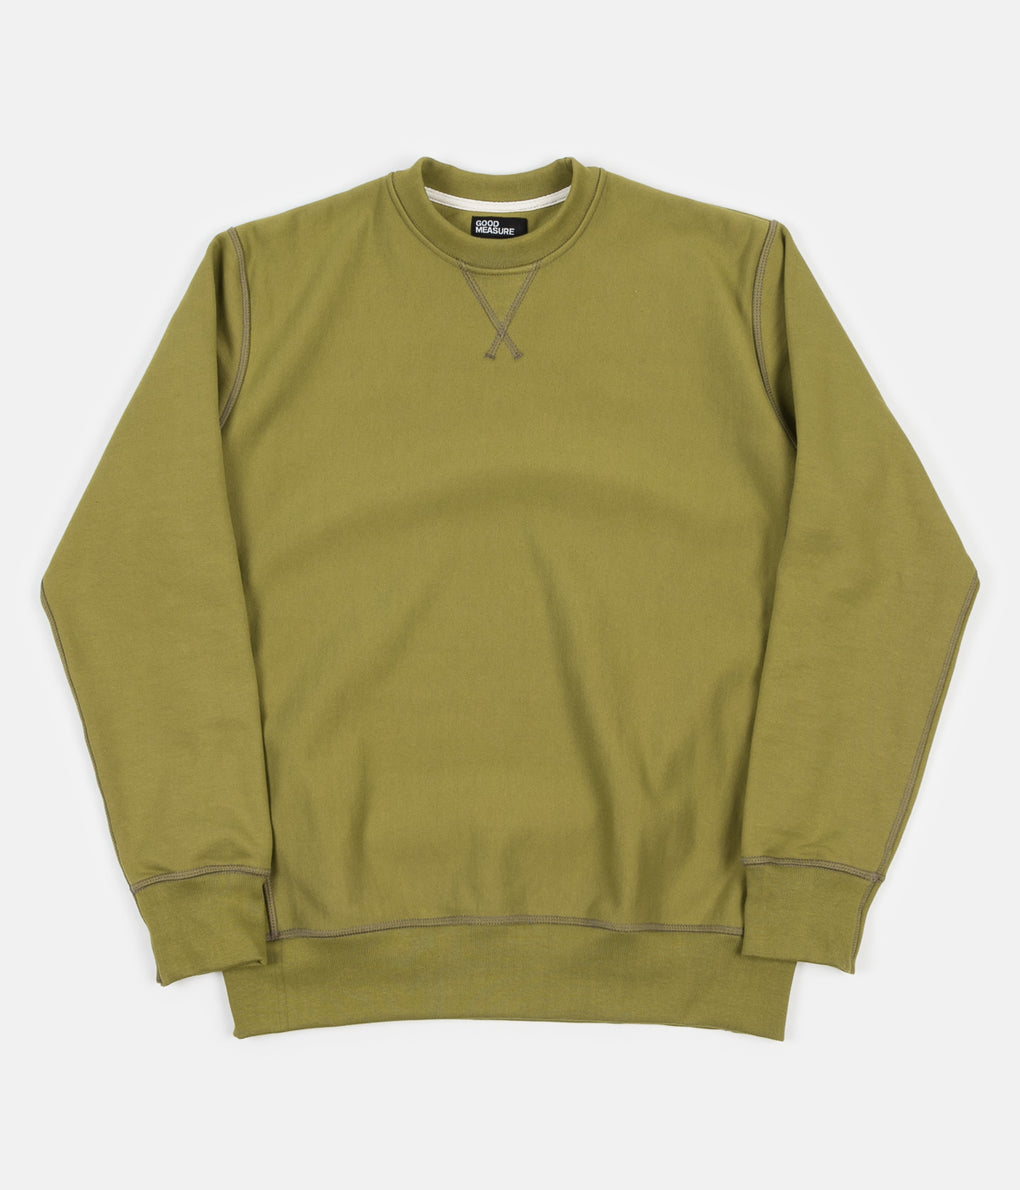 Good Measure M-21 'Lonely Hearts' John Crewneck Sweatshirt - Olive